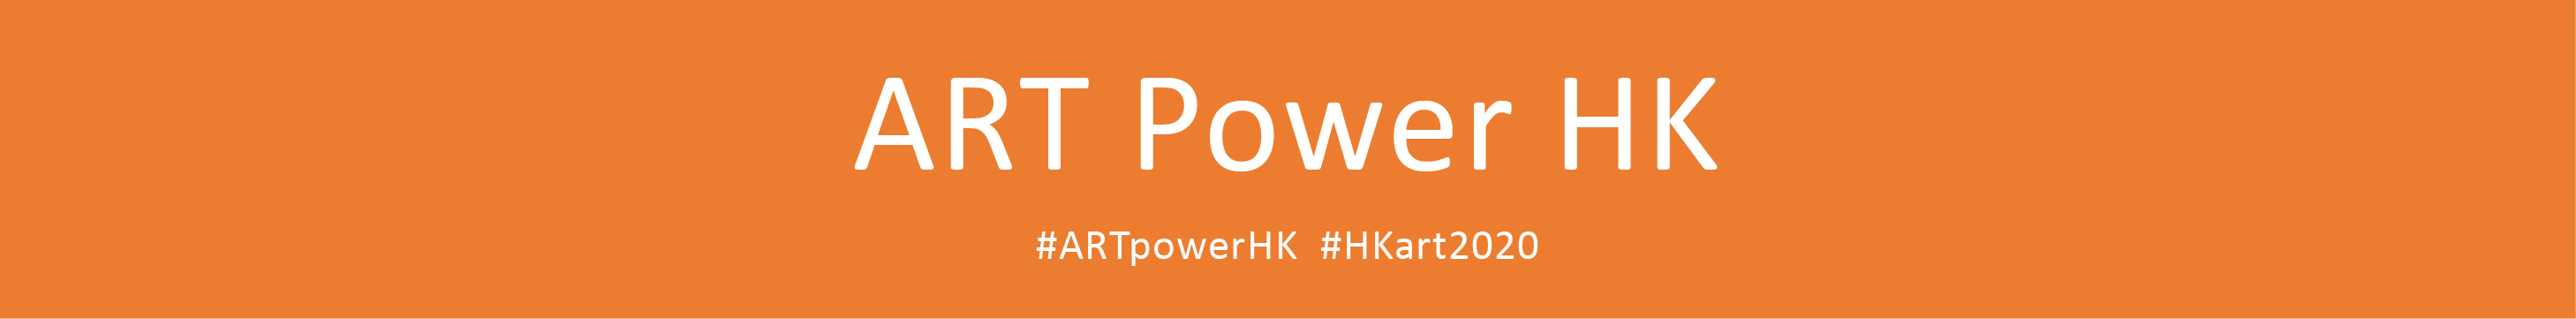 ART Power HK